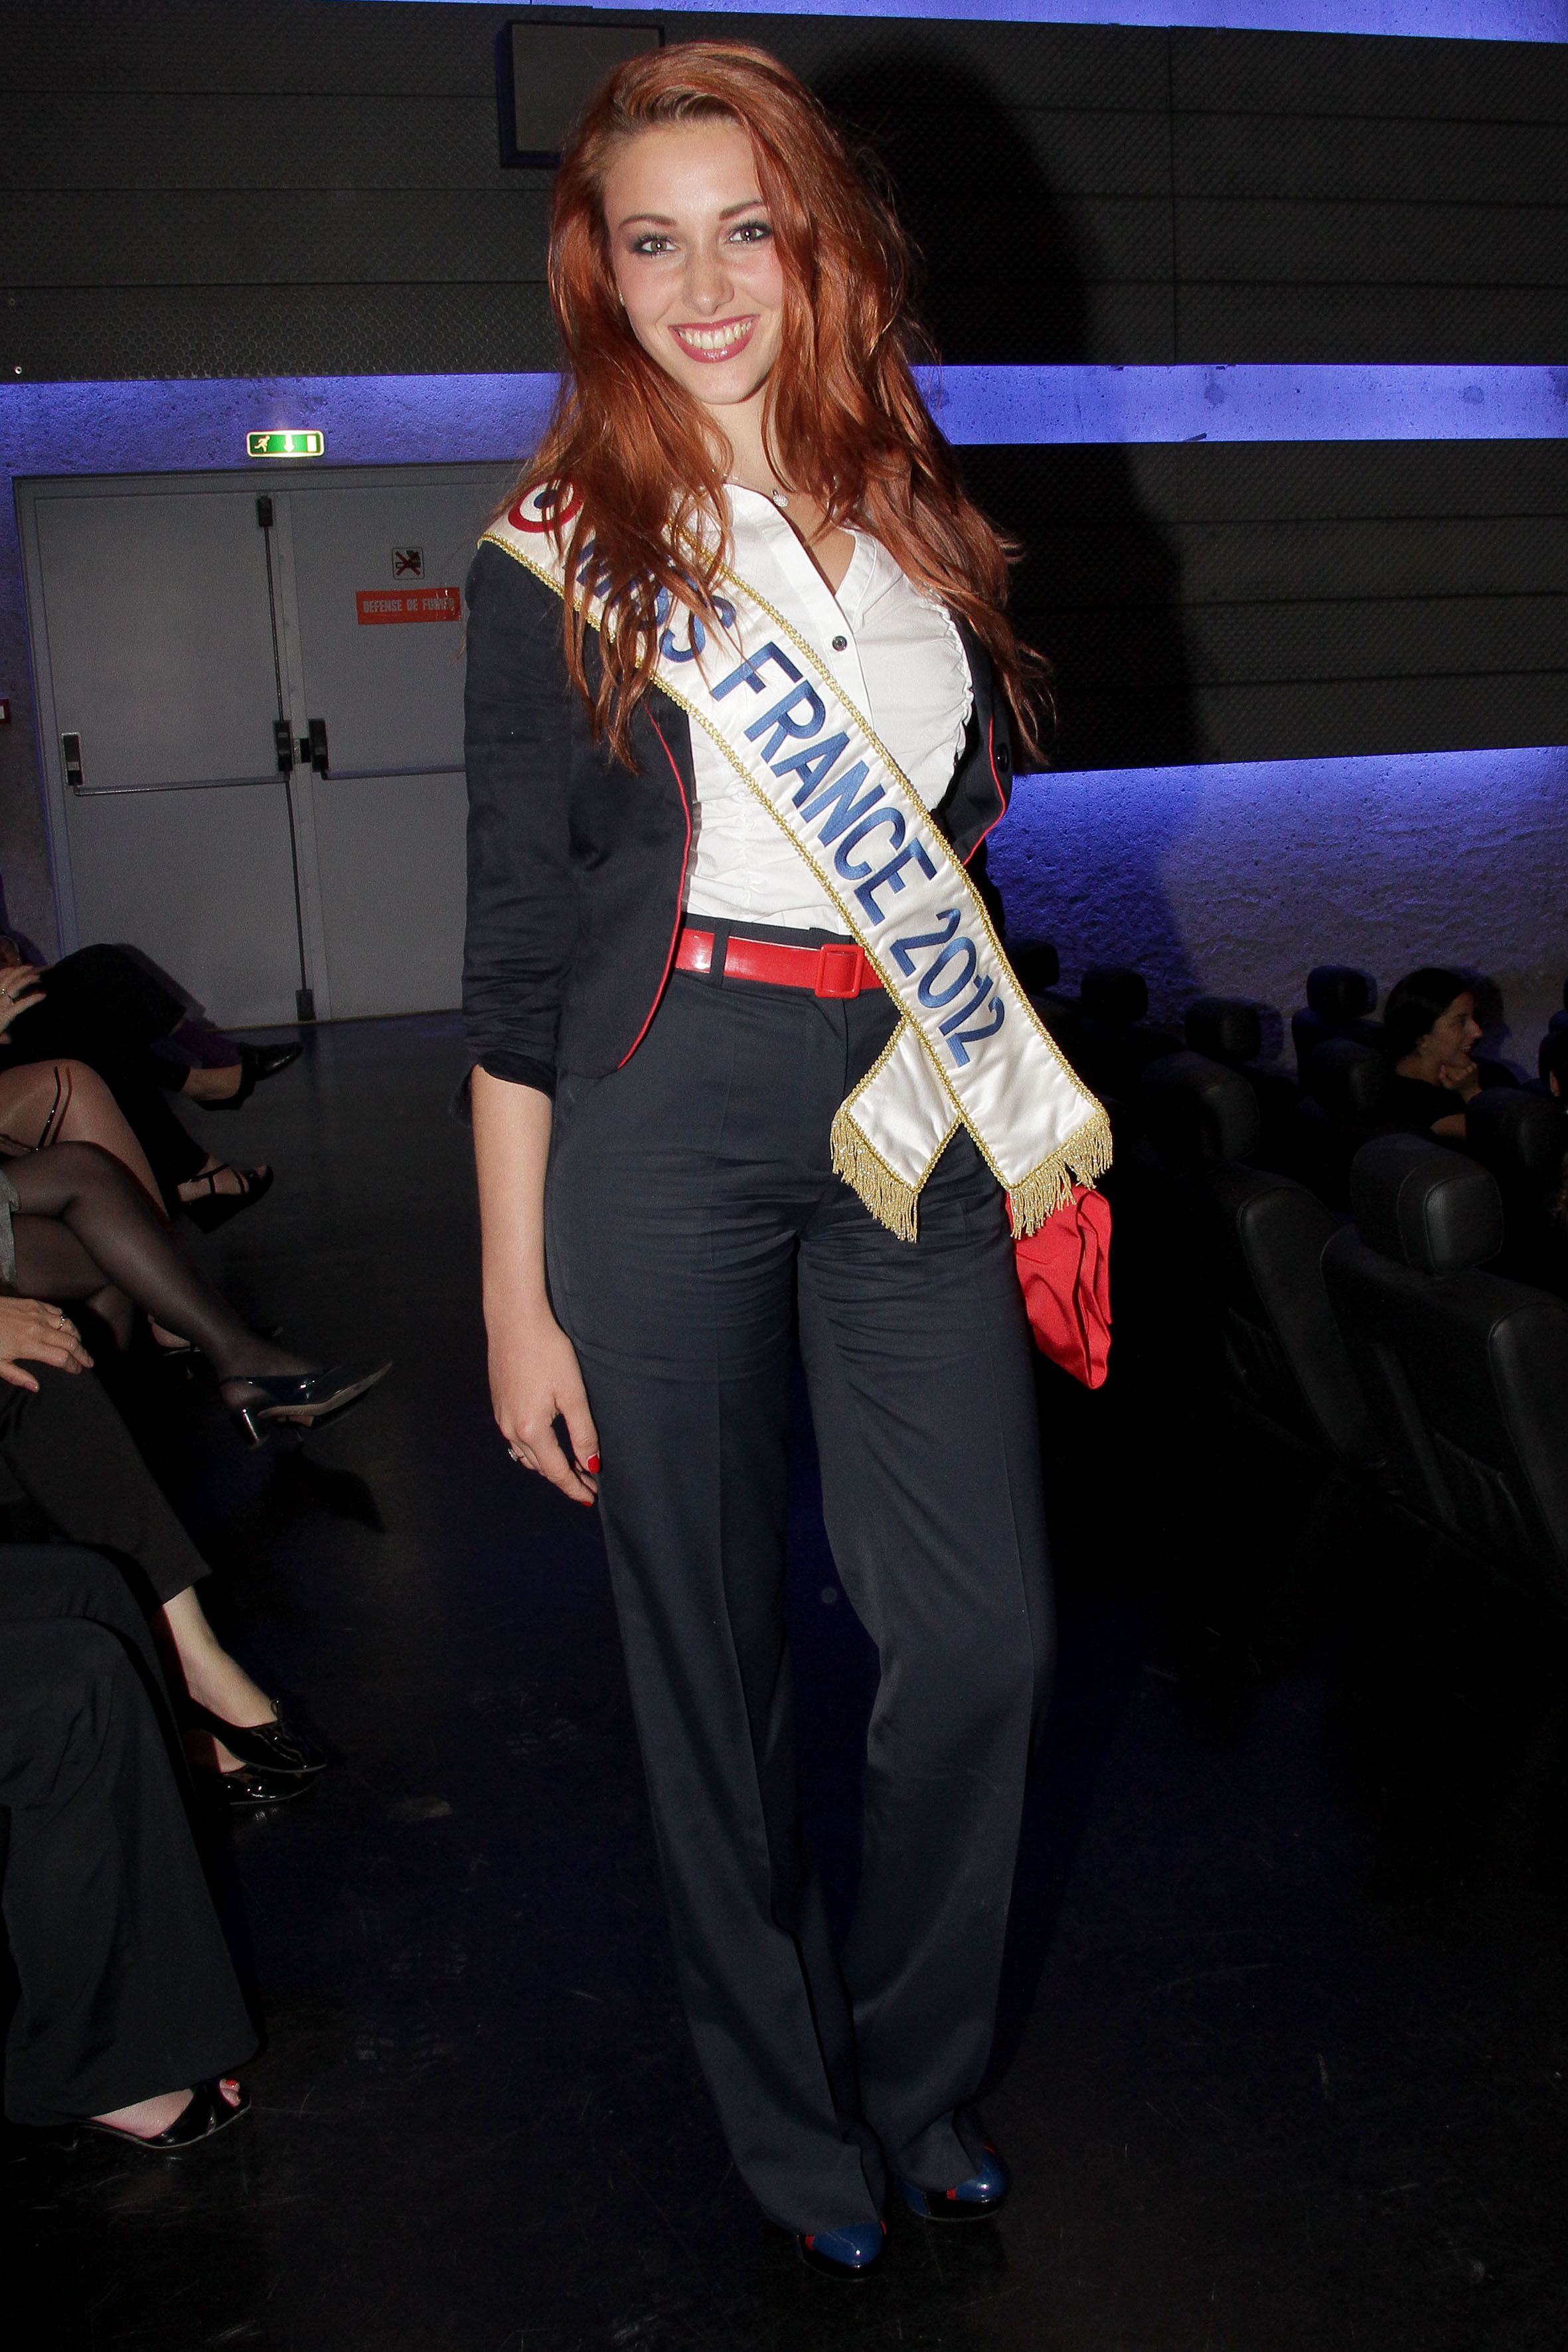 Delphine Wespiser, Miss France 2012 © Falour